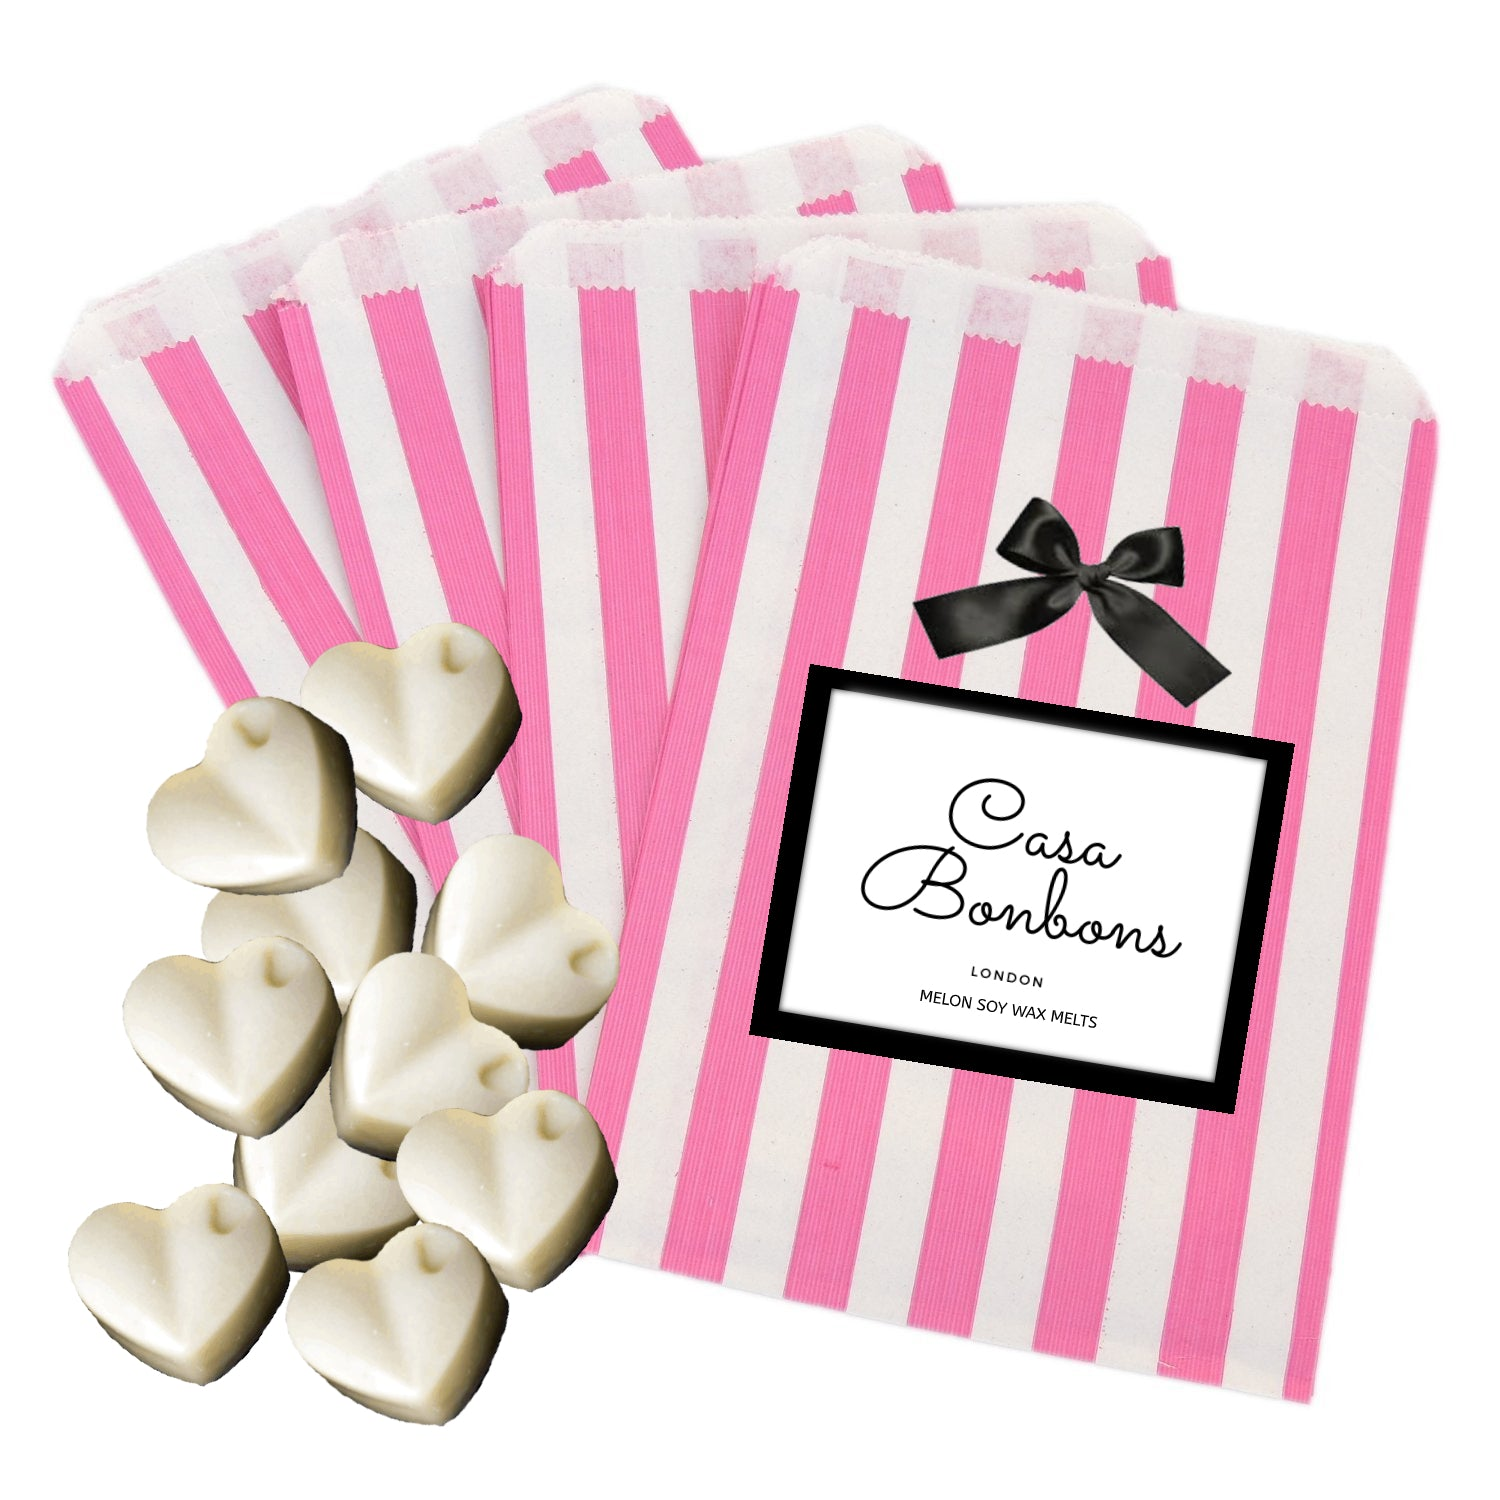 Melon scented Soy Wax Melts (10 hearts), PRE-ORDER delivery around 15th of December - natoorio